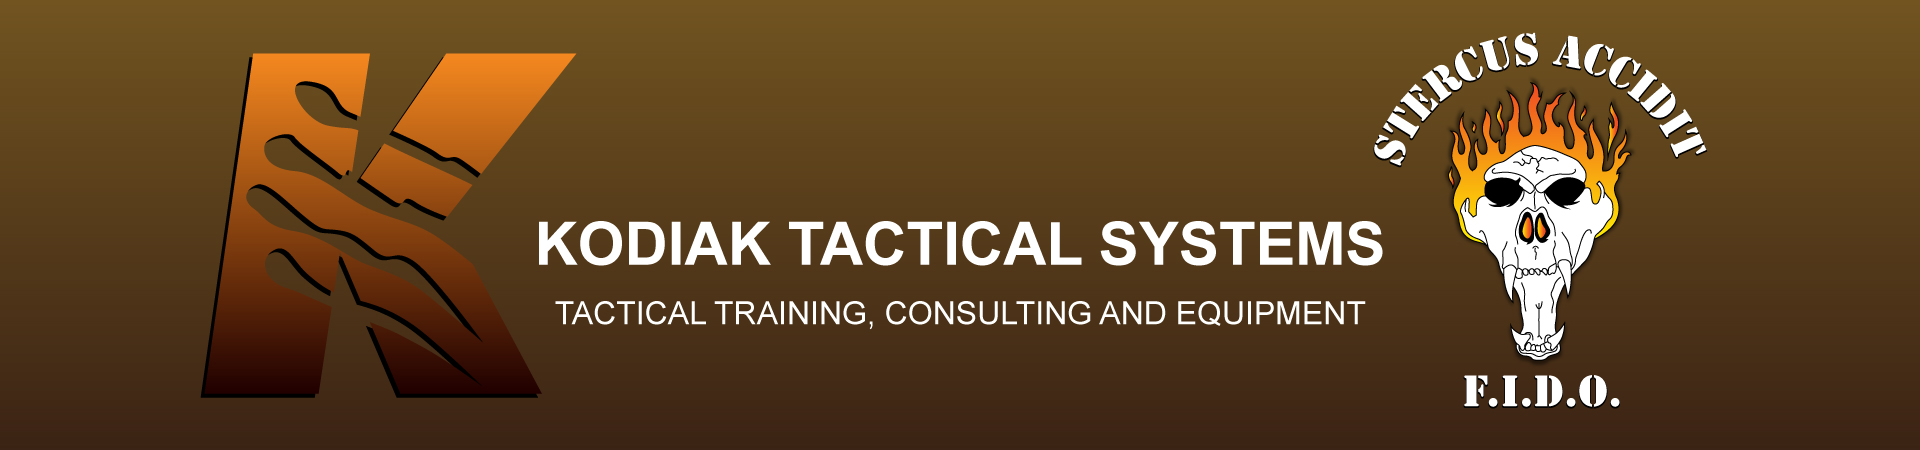 KODIAK TACTICAL SYSTEMS